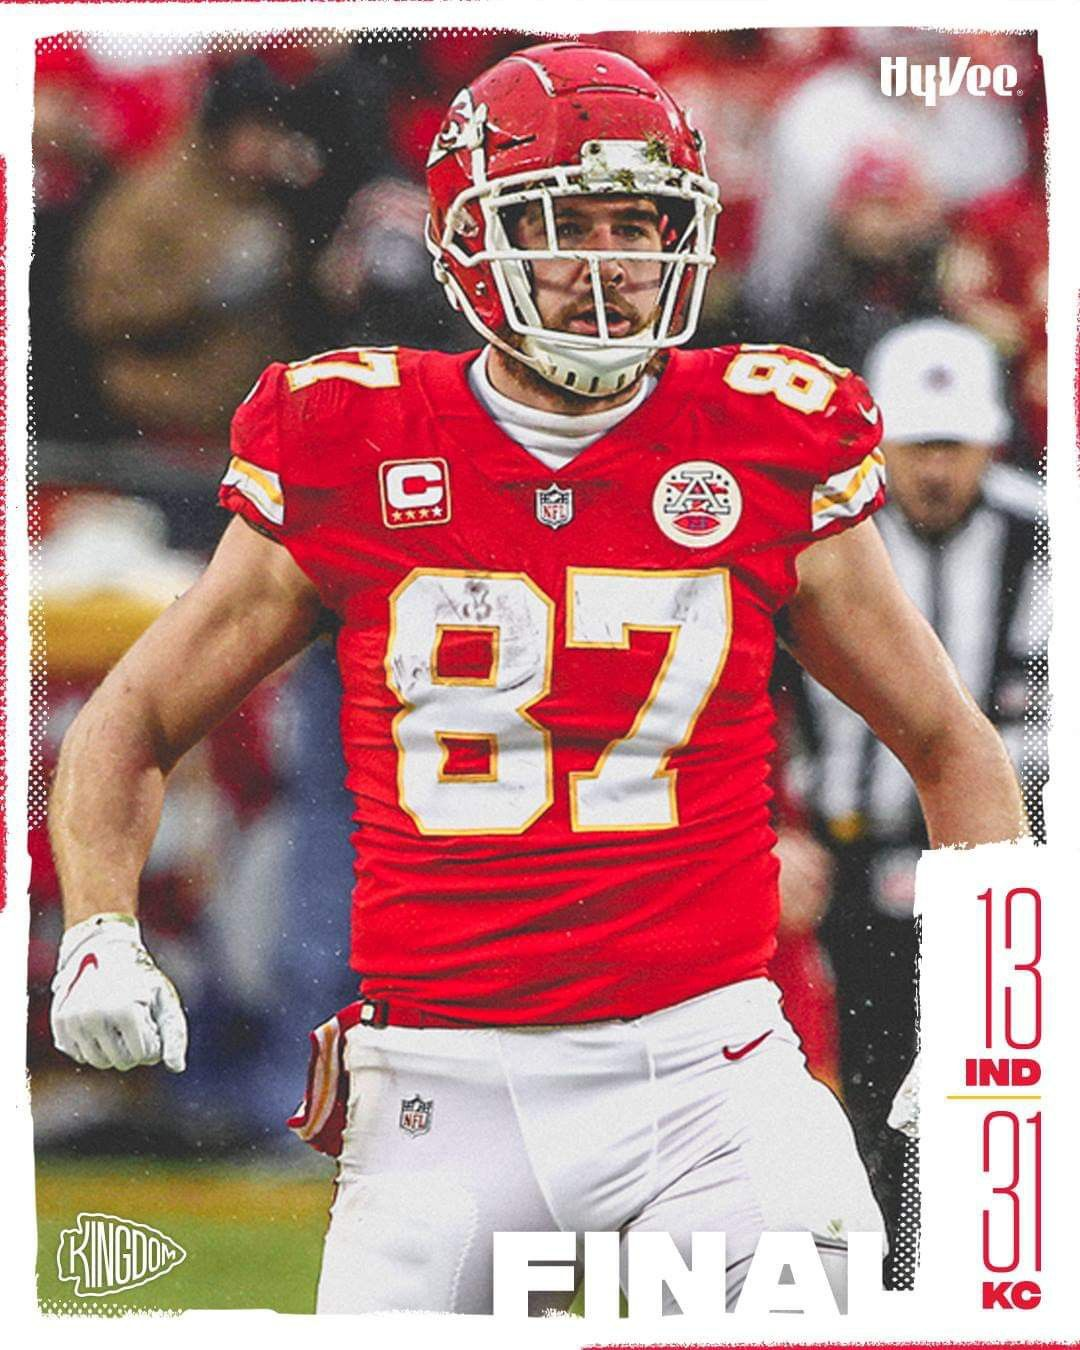 Pin by Skinny on KC Chiefs in 2020 Kansas city chiefs